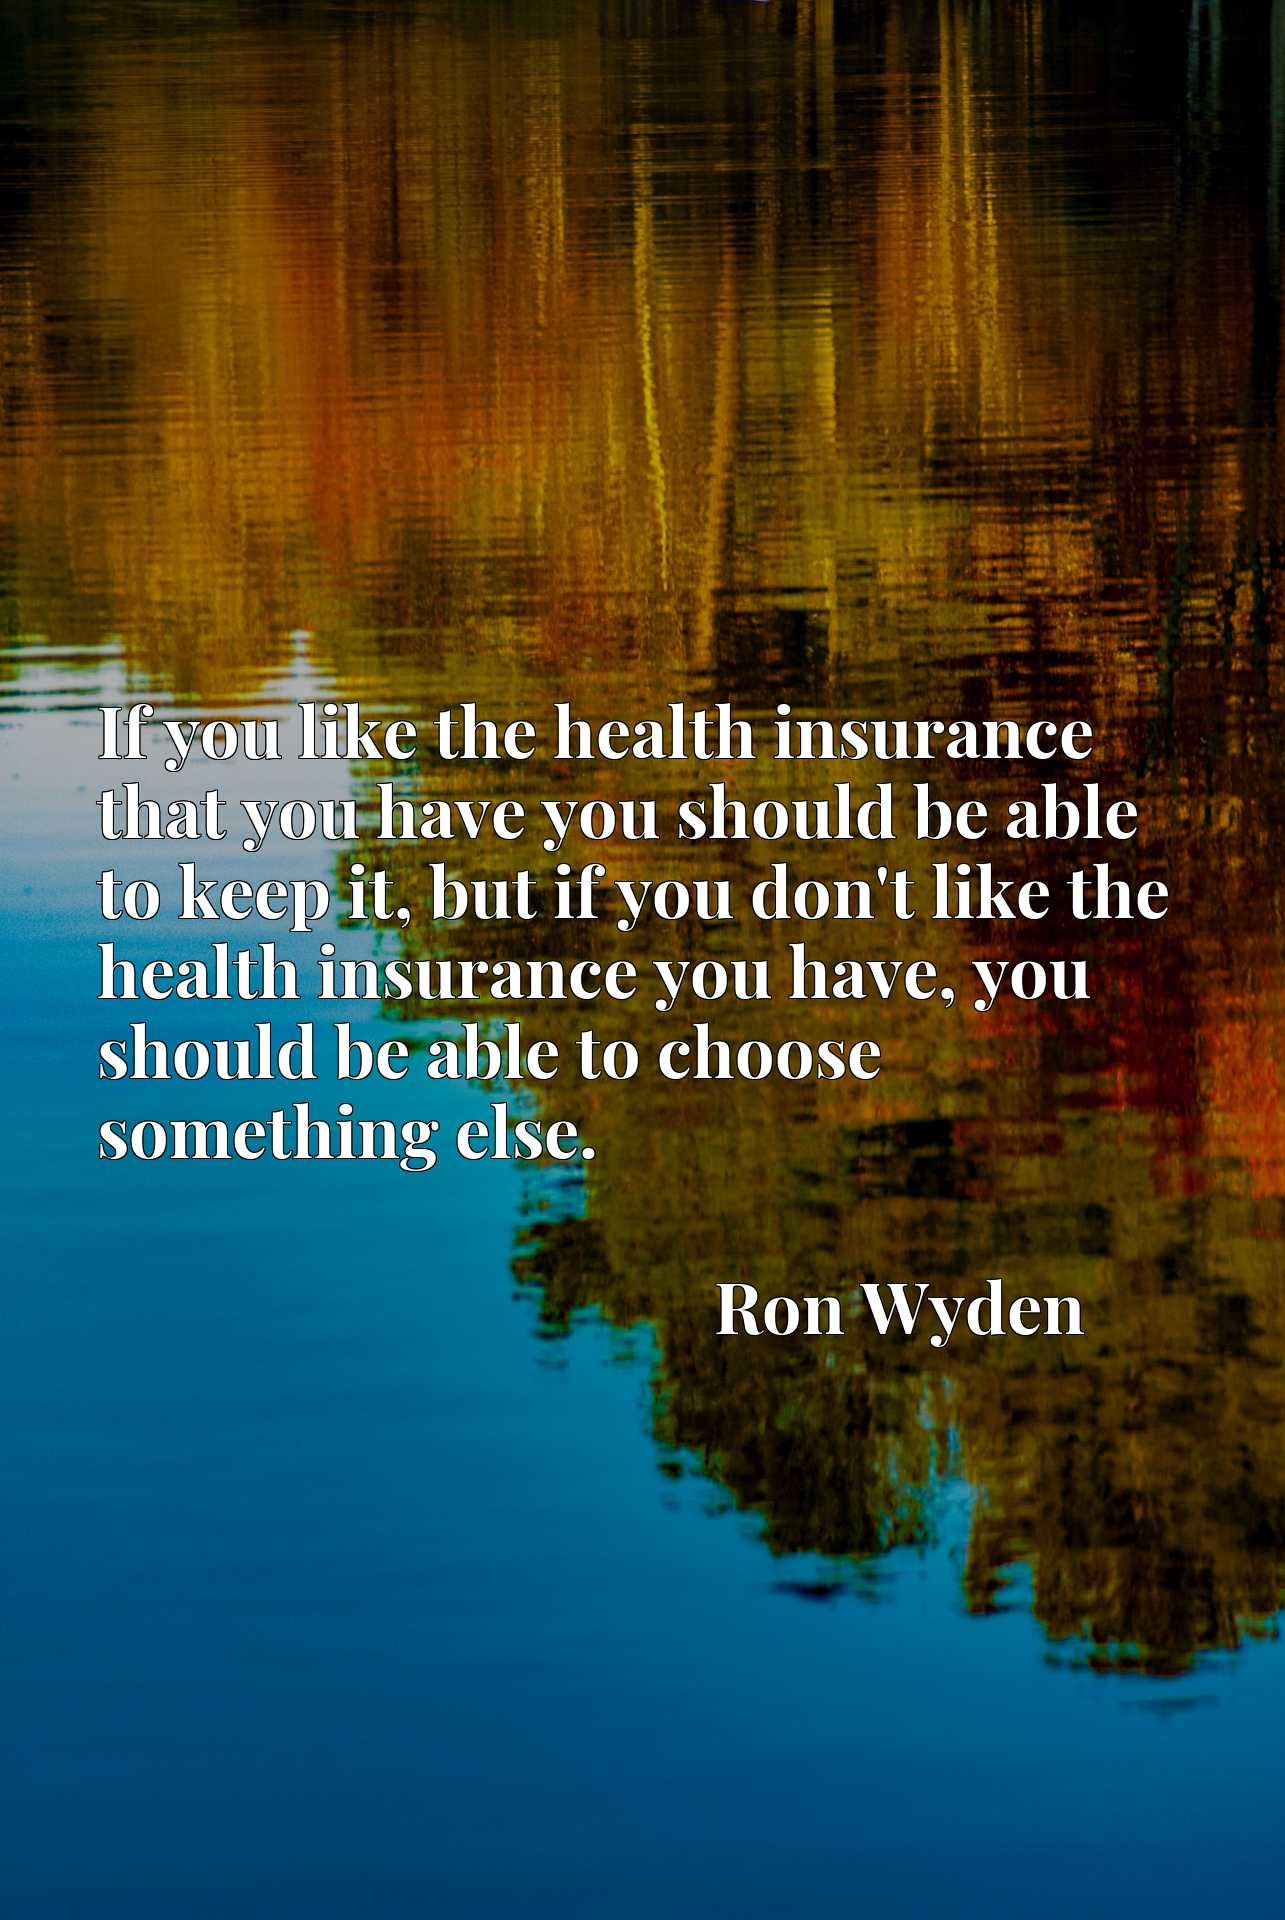 If you like the health insurance that you have you should be able to keep it, but if you don't like the health insurance you have, you should be able to choose something else.